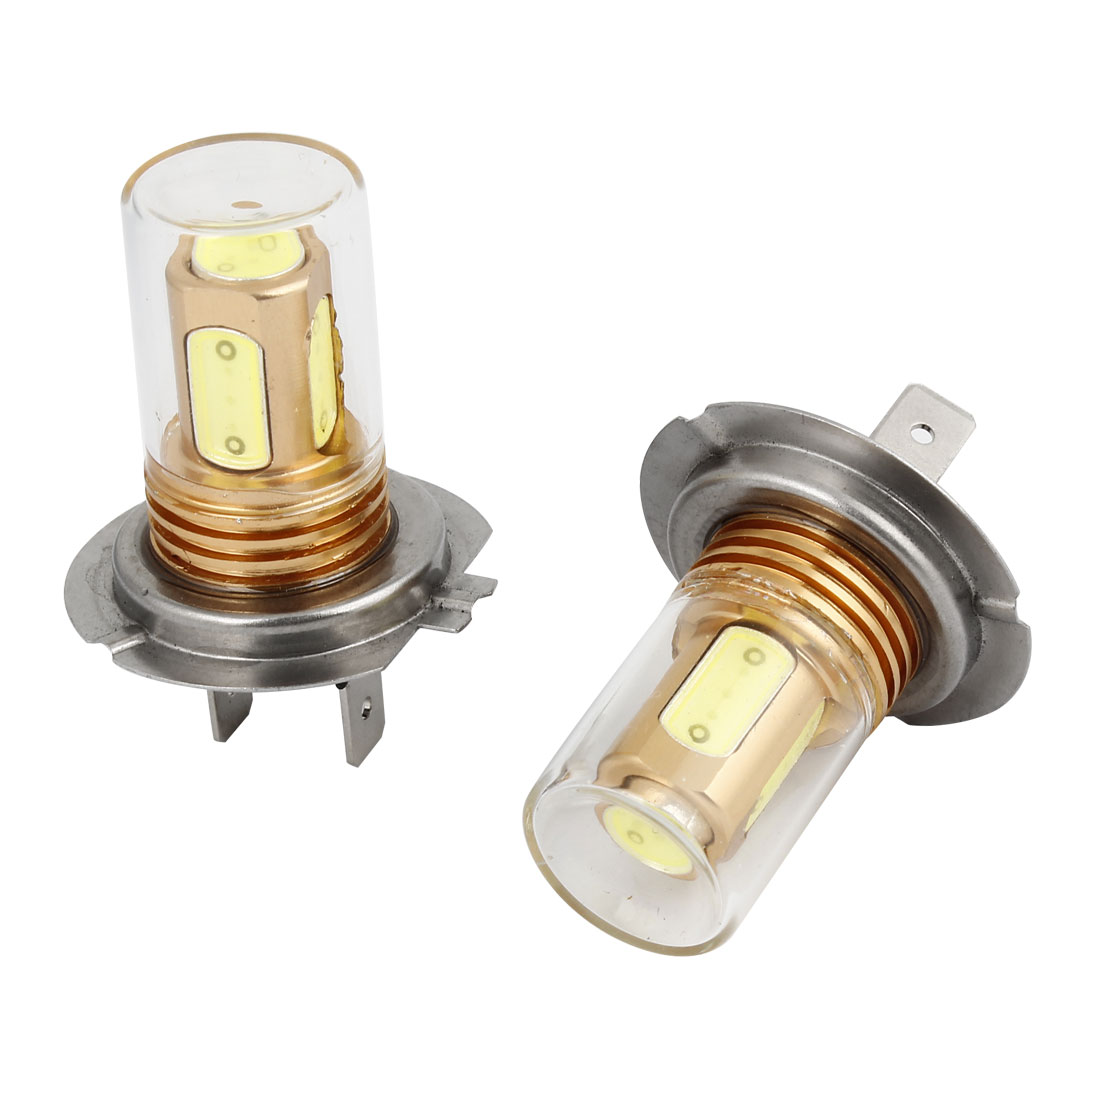 2 Pcs Auto Car H7 Base White 5 LED Foglamp Head Light Bulb Lamp 7W DC 12V